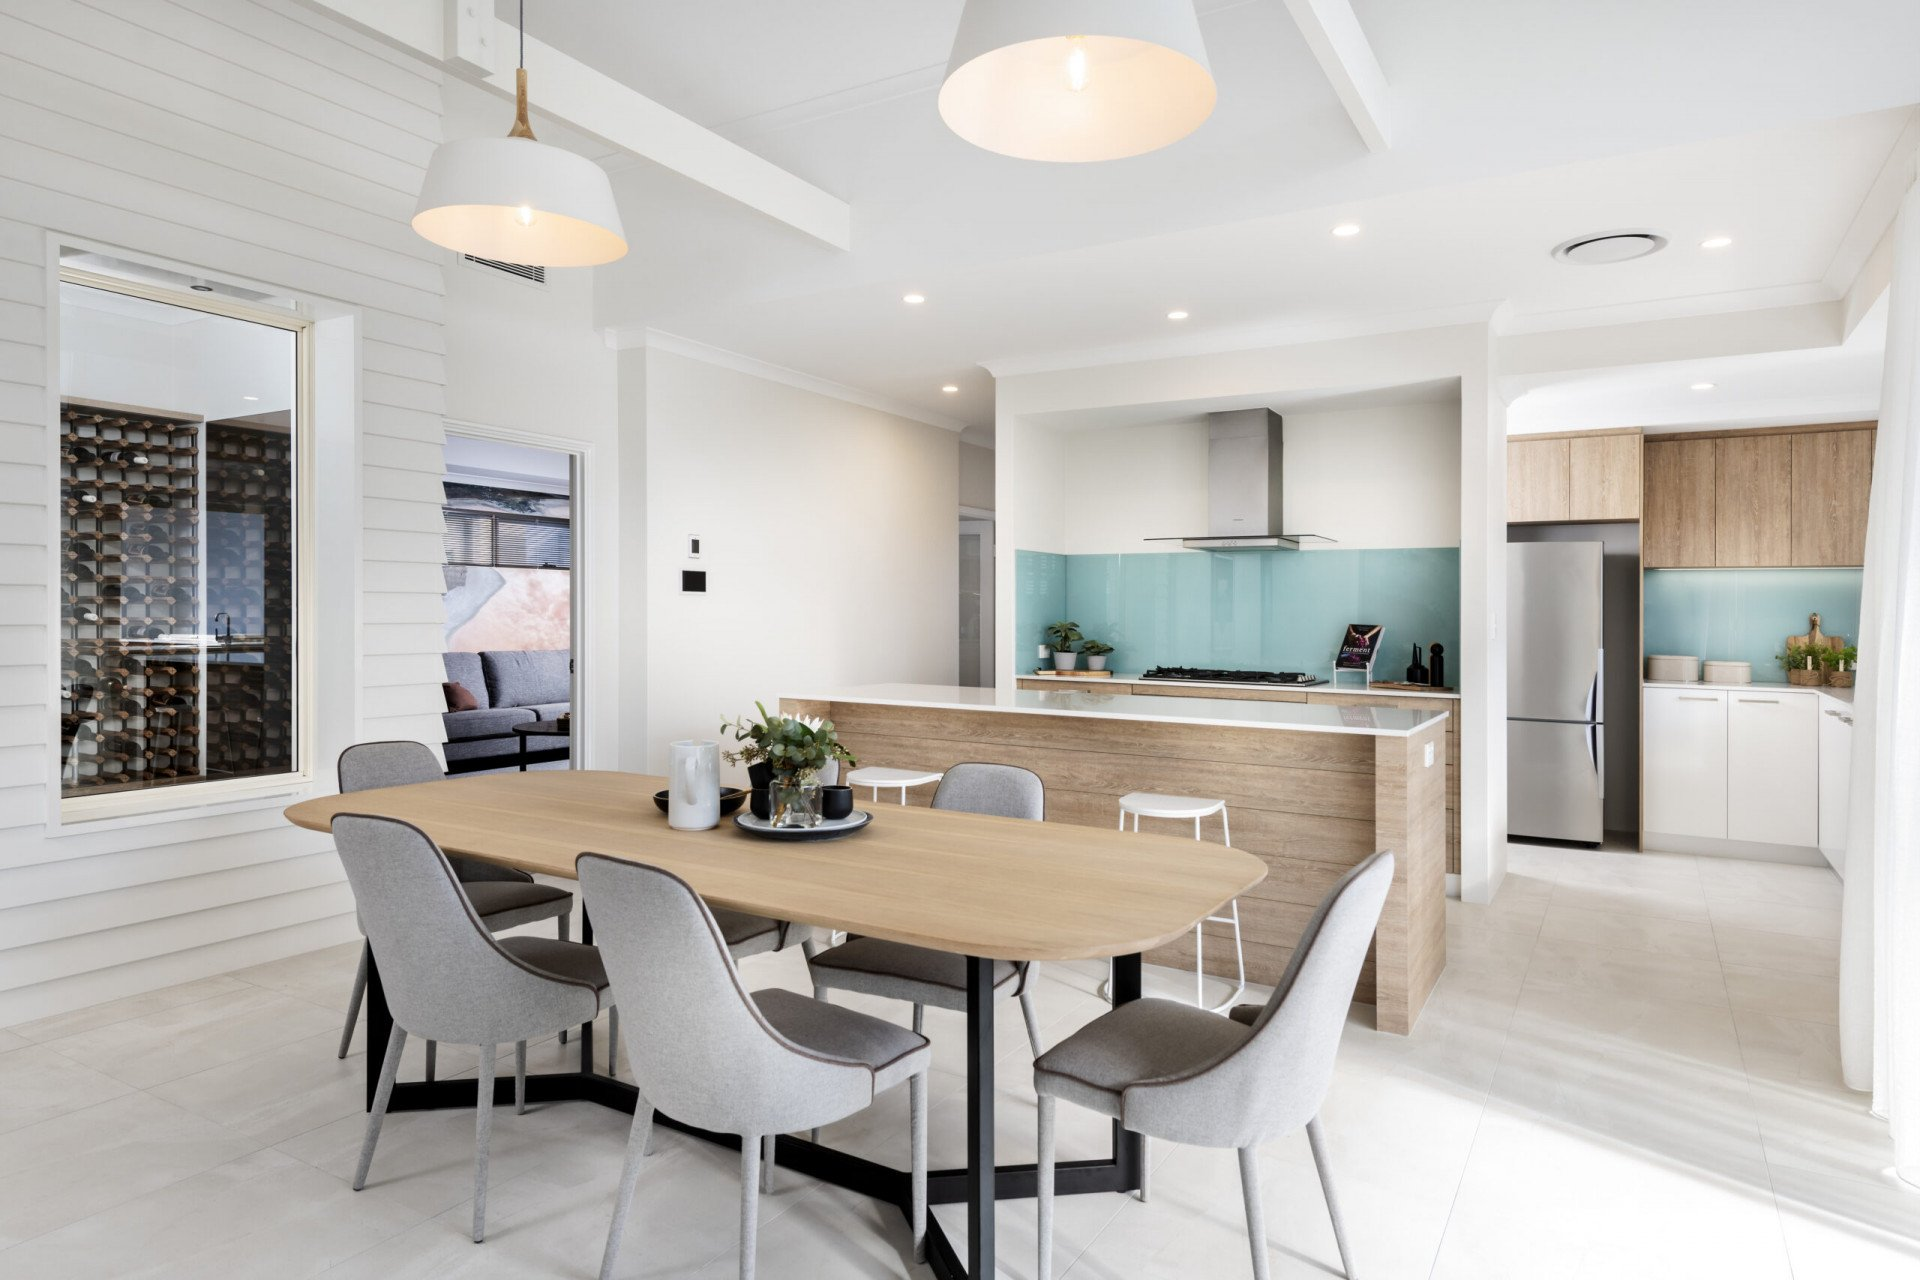 Dining-Kitchen-2-2-scaled